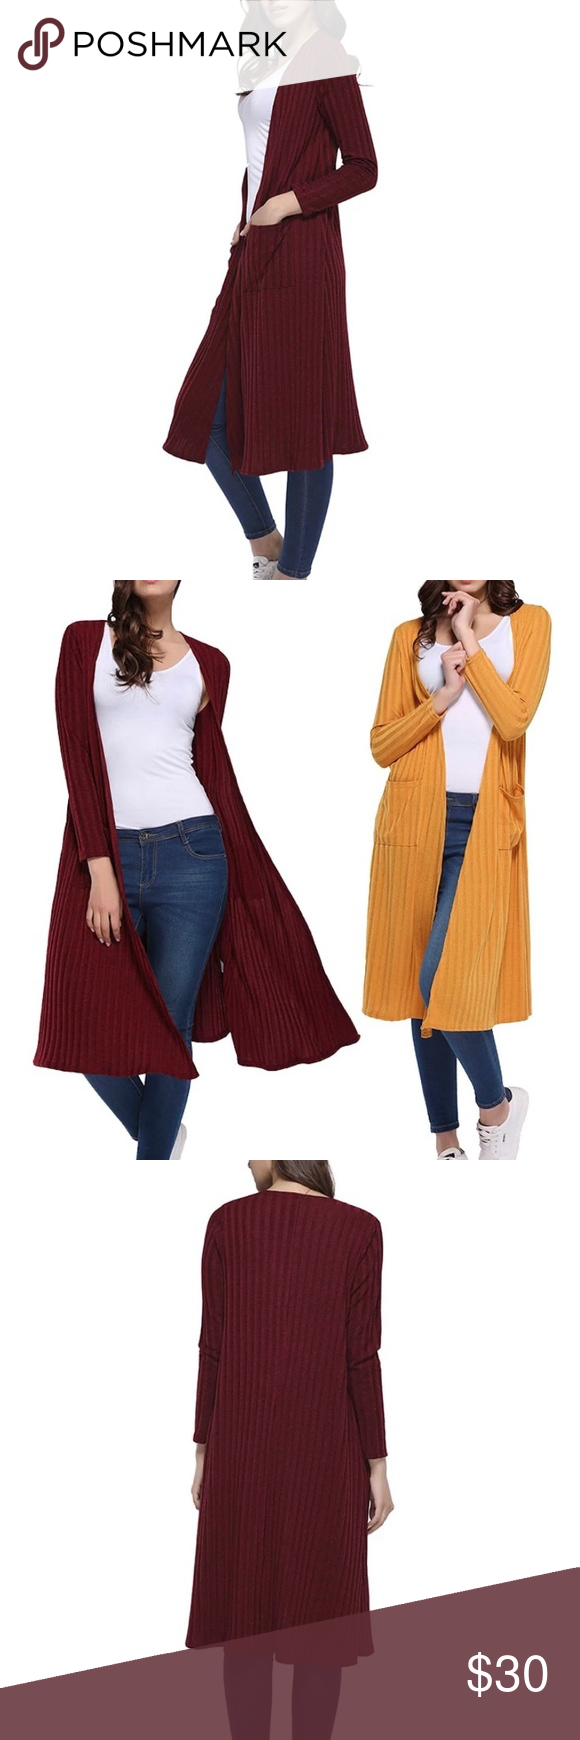 Cherry-Red Cardigan Long Cardigan, very comfortable made from 95% polyester (marled fabric) Sweaters Cardigans #myposhpicks